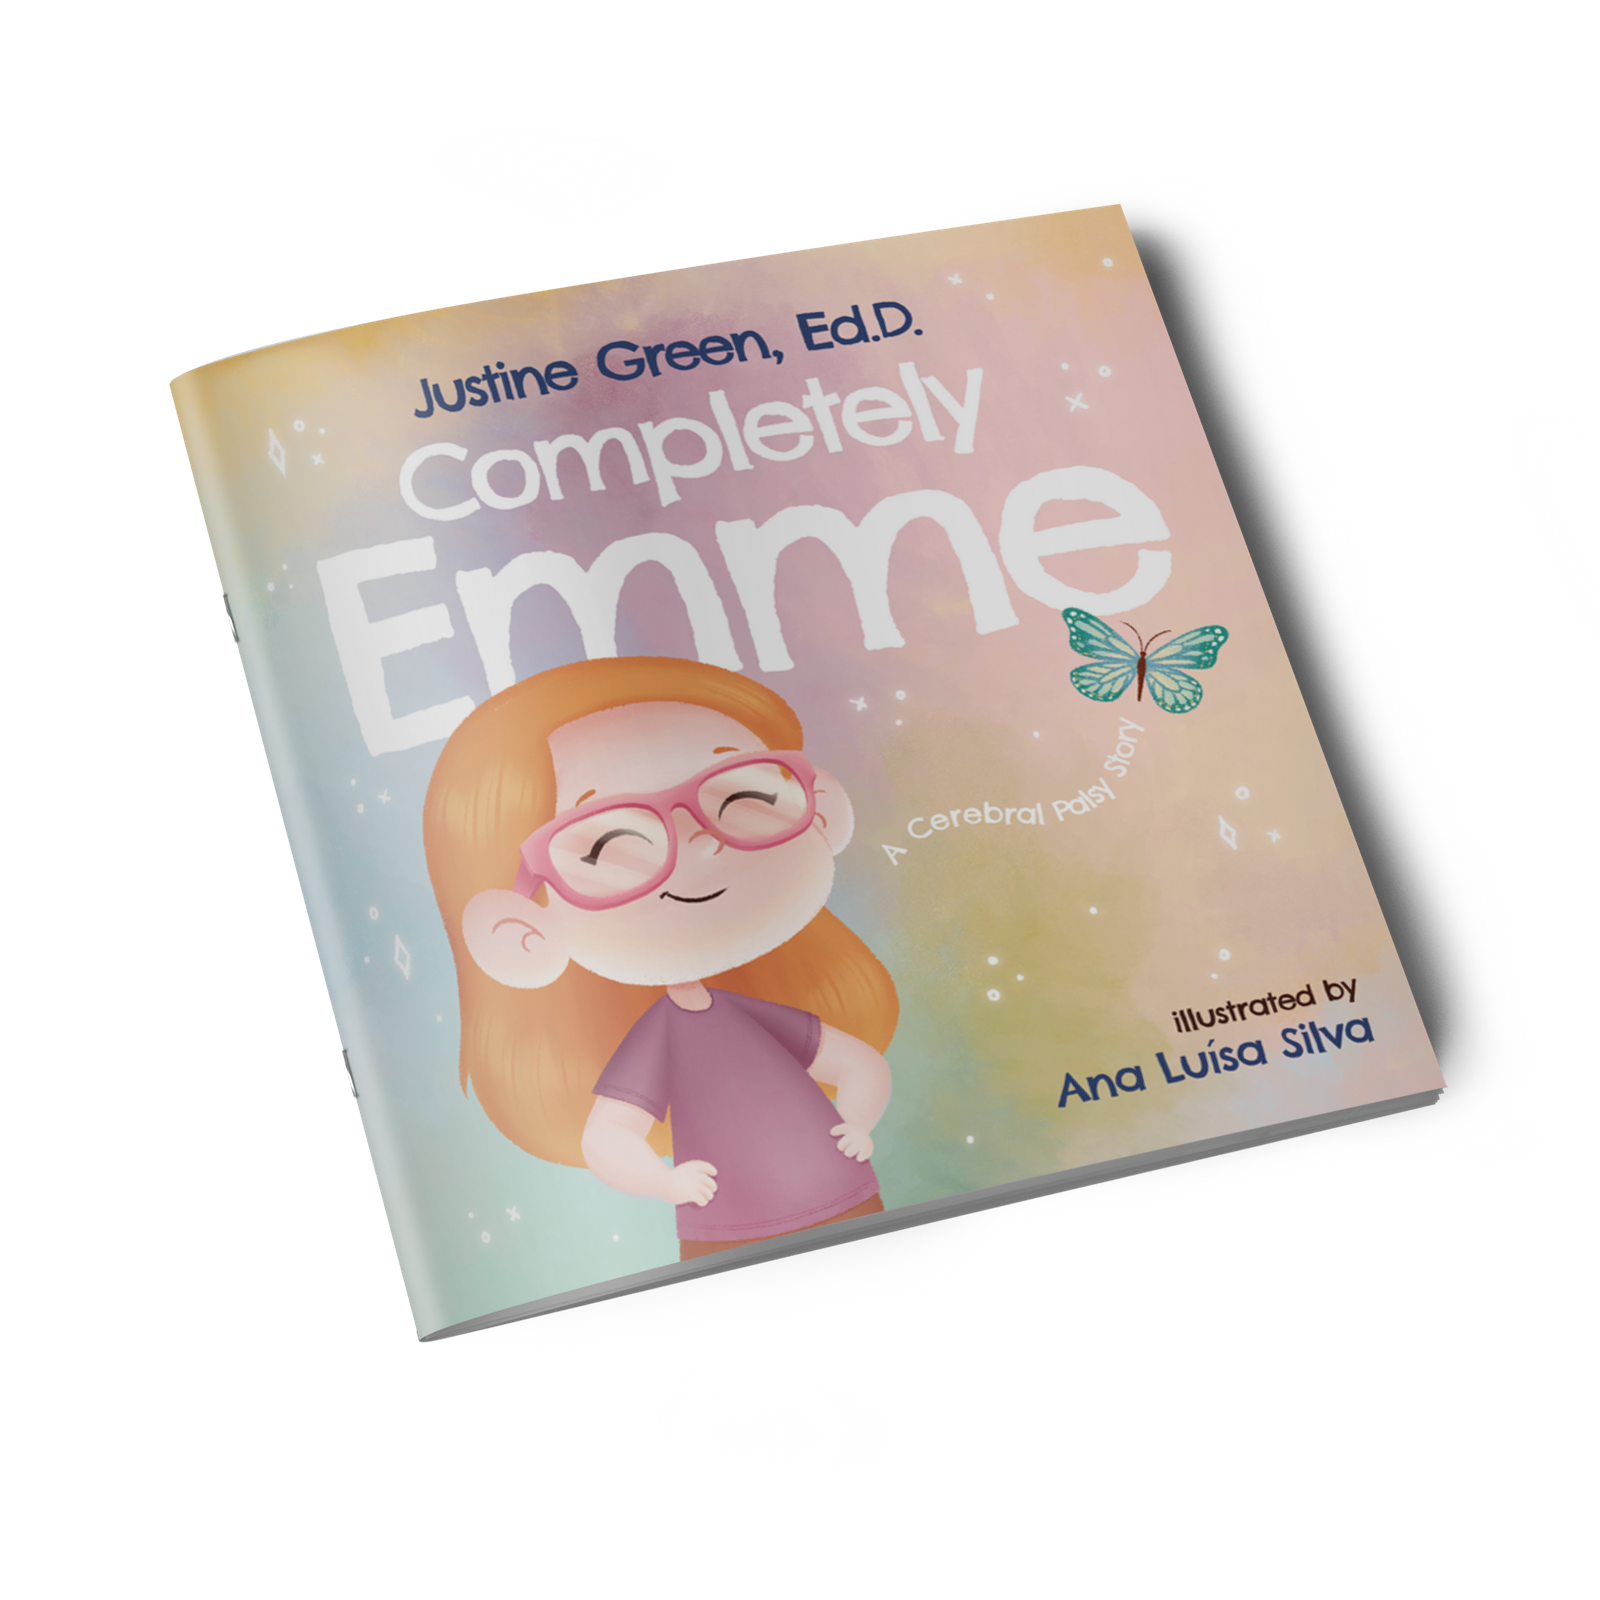 Completely Emme E-Book